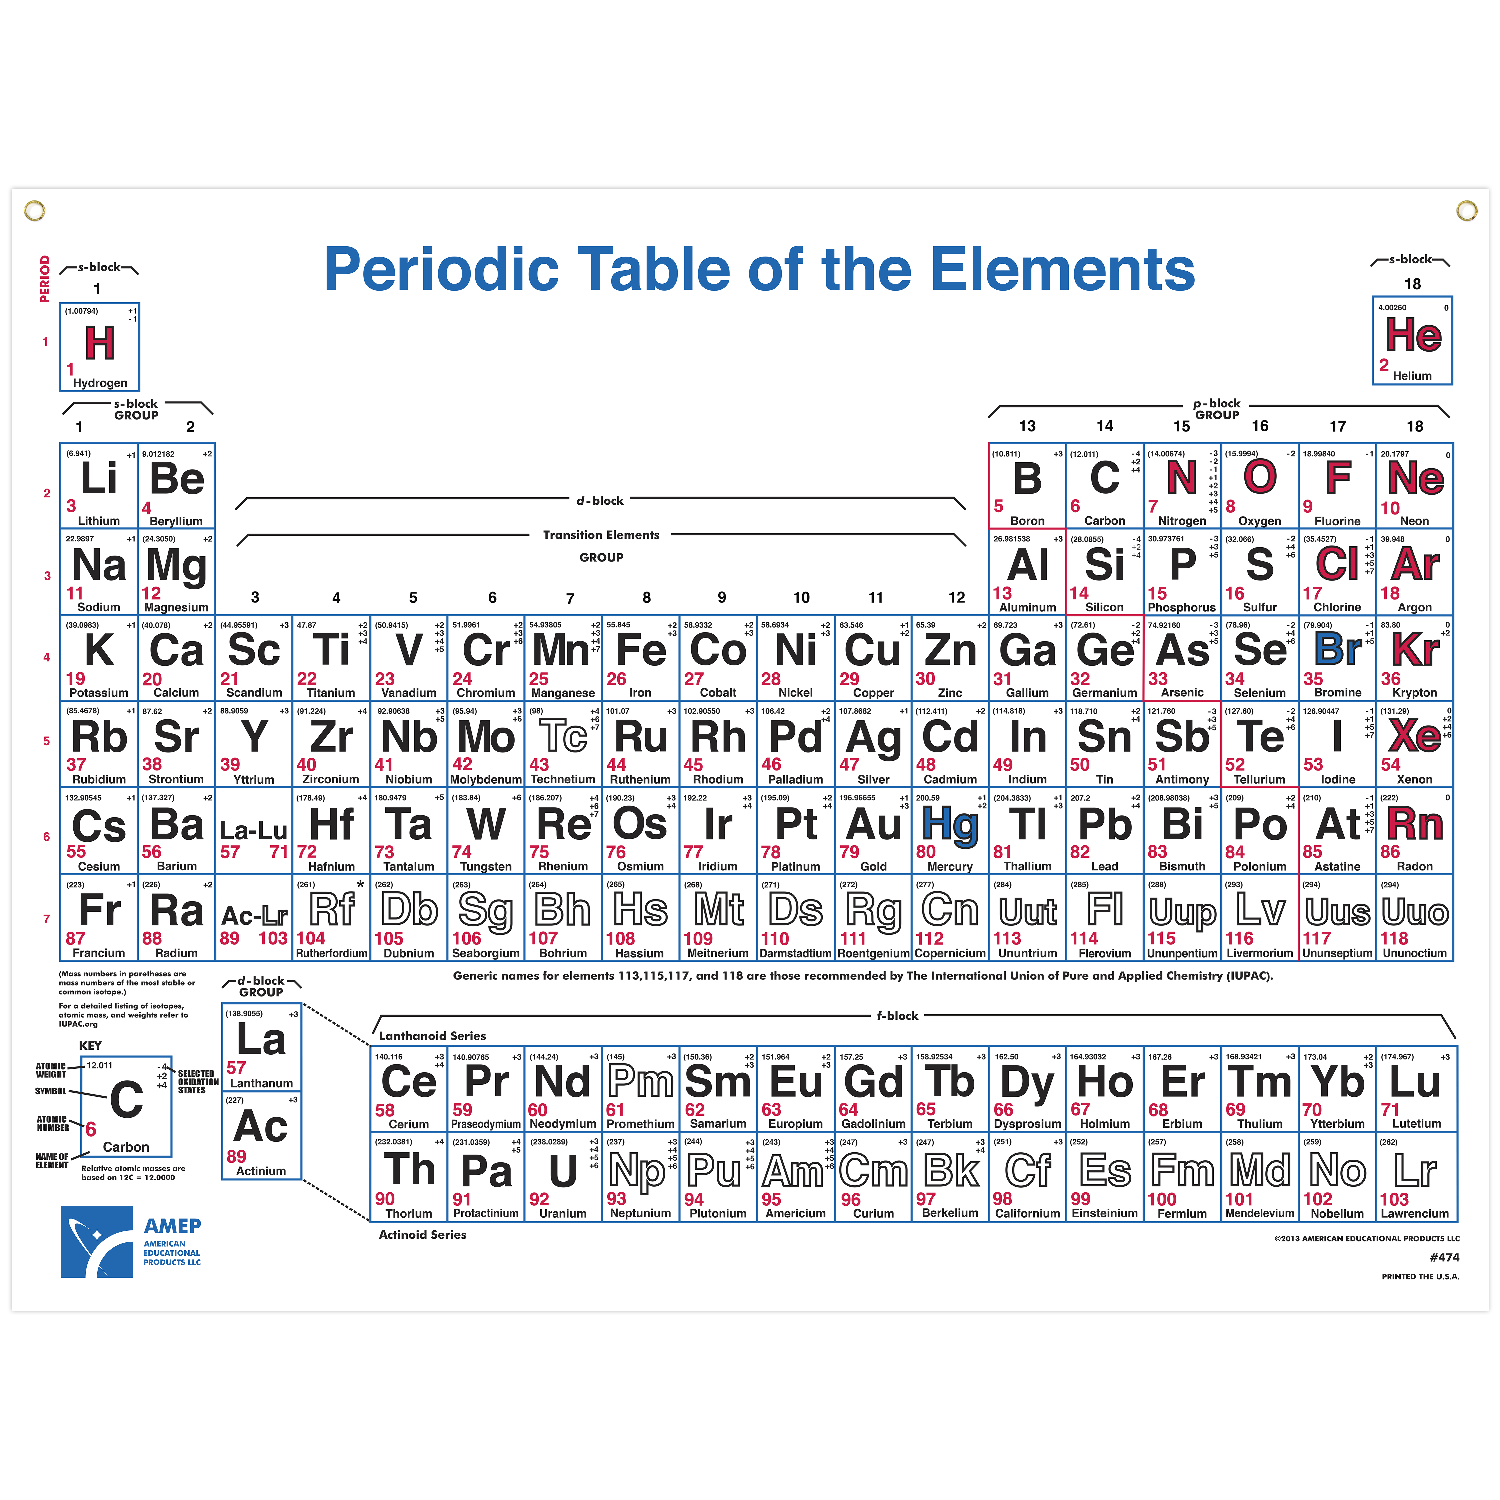 Scott resources hubbard scientific periodic table wall chart 4 scott resources hubbard scientific periodic table wall chart4 color urtaz Choice Image